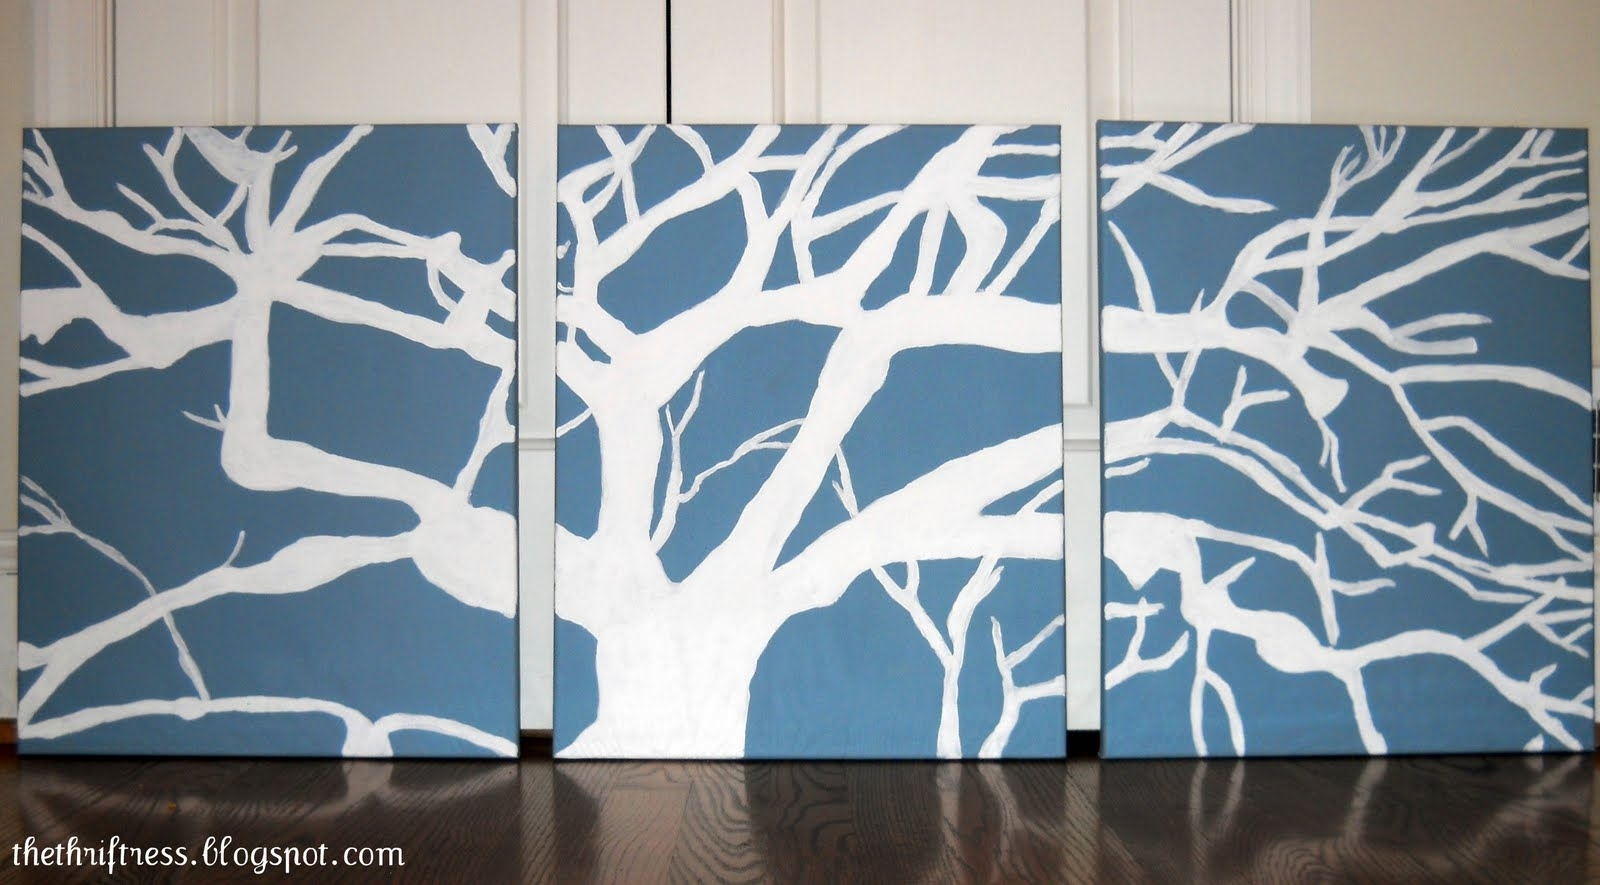 Diy Wall Art Stencils Paint Fabric – Dma Homes | #37854 With Newest Fabric Painting Wall Art (View 7 of 15)